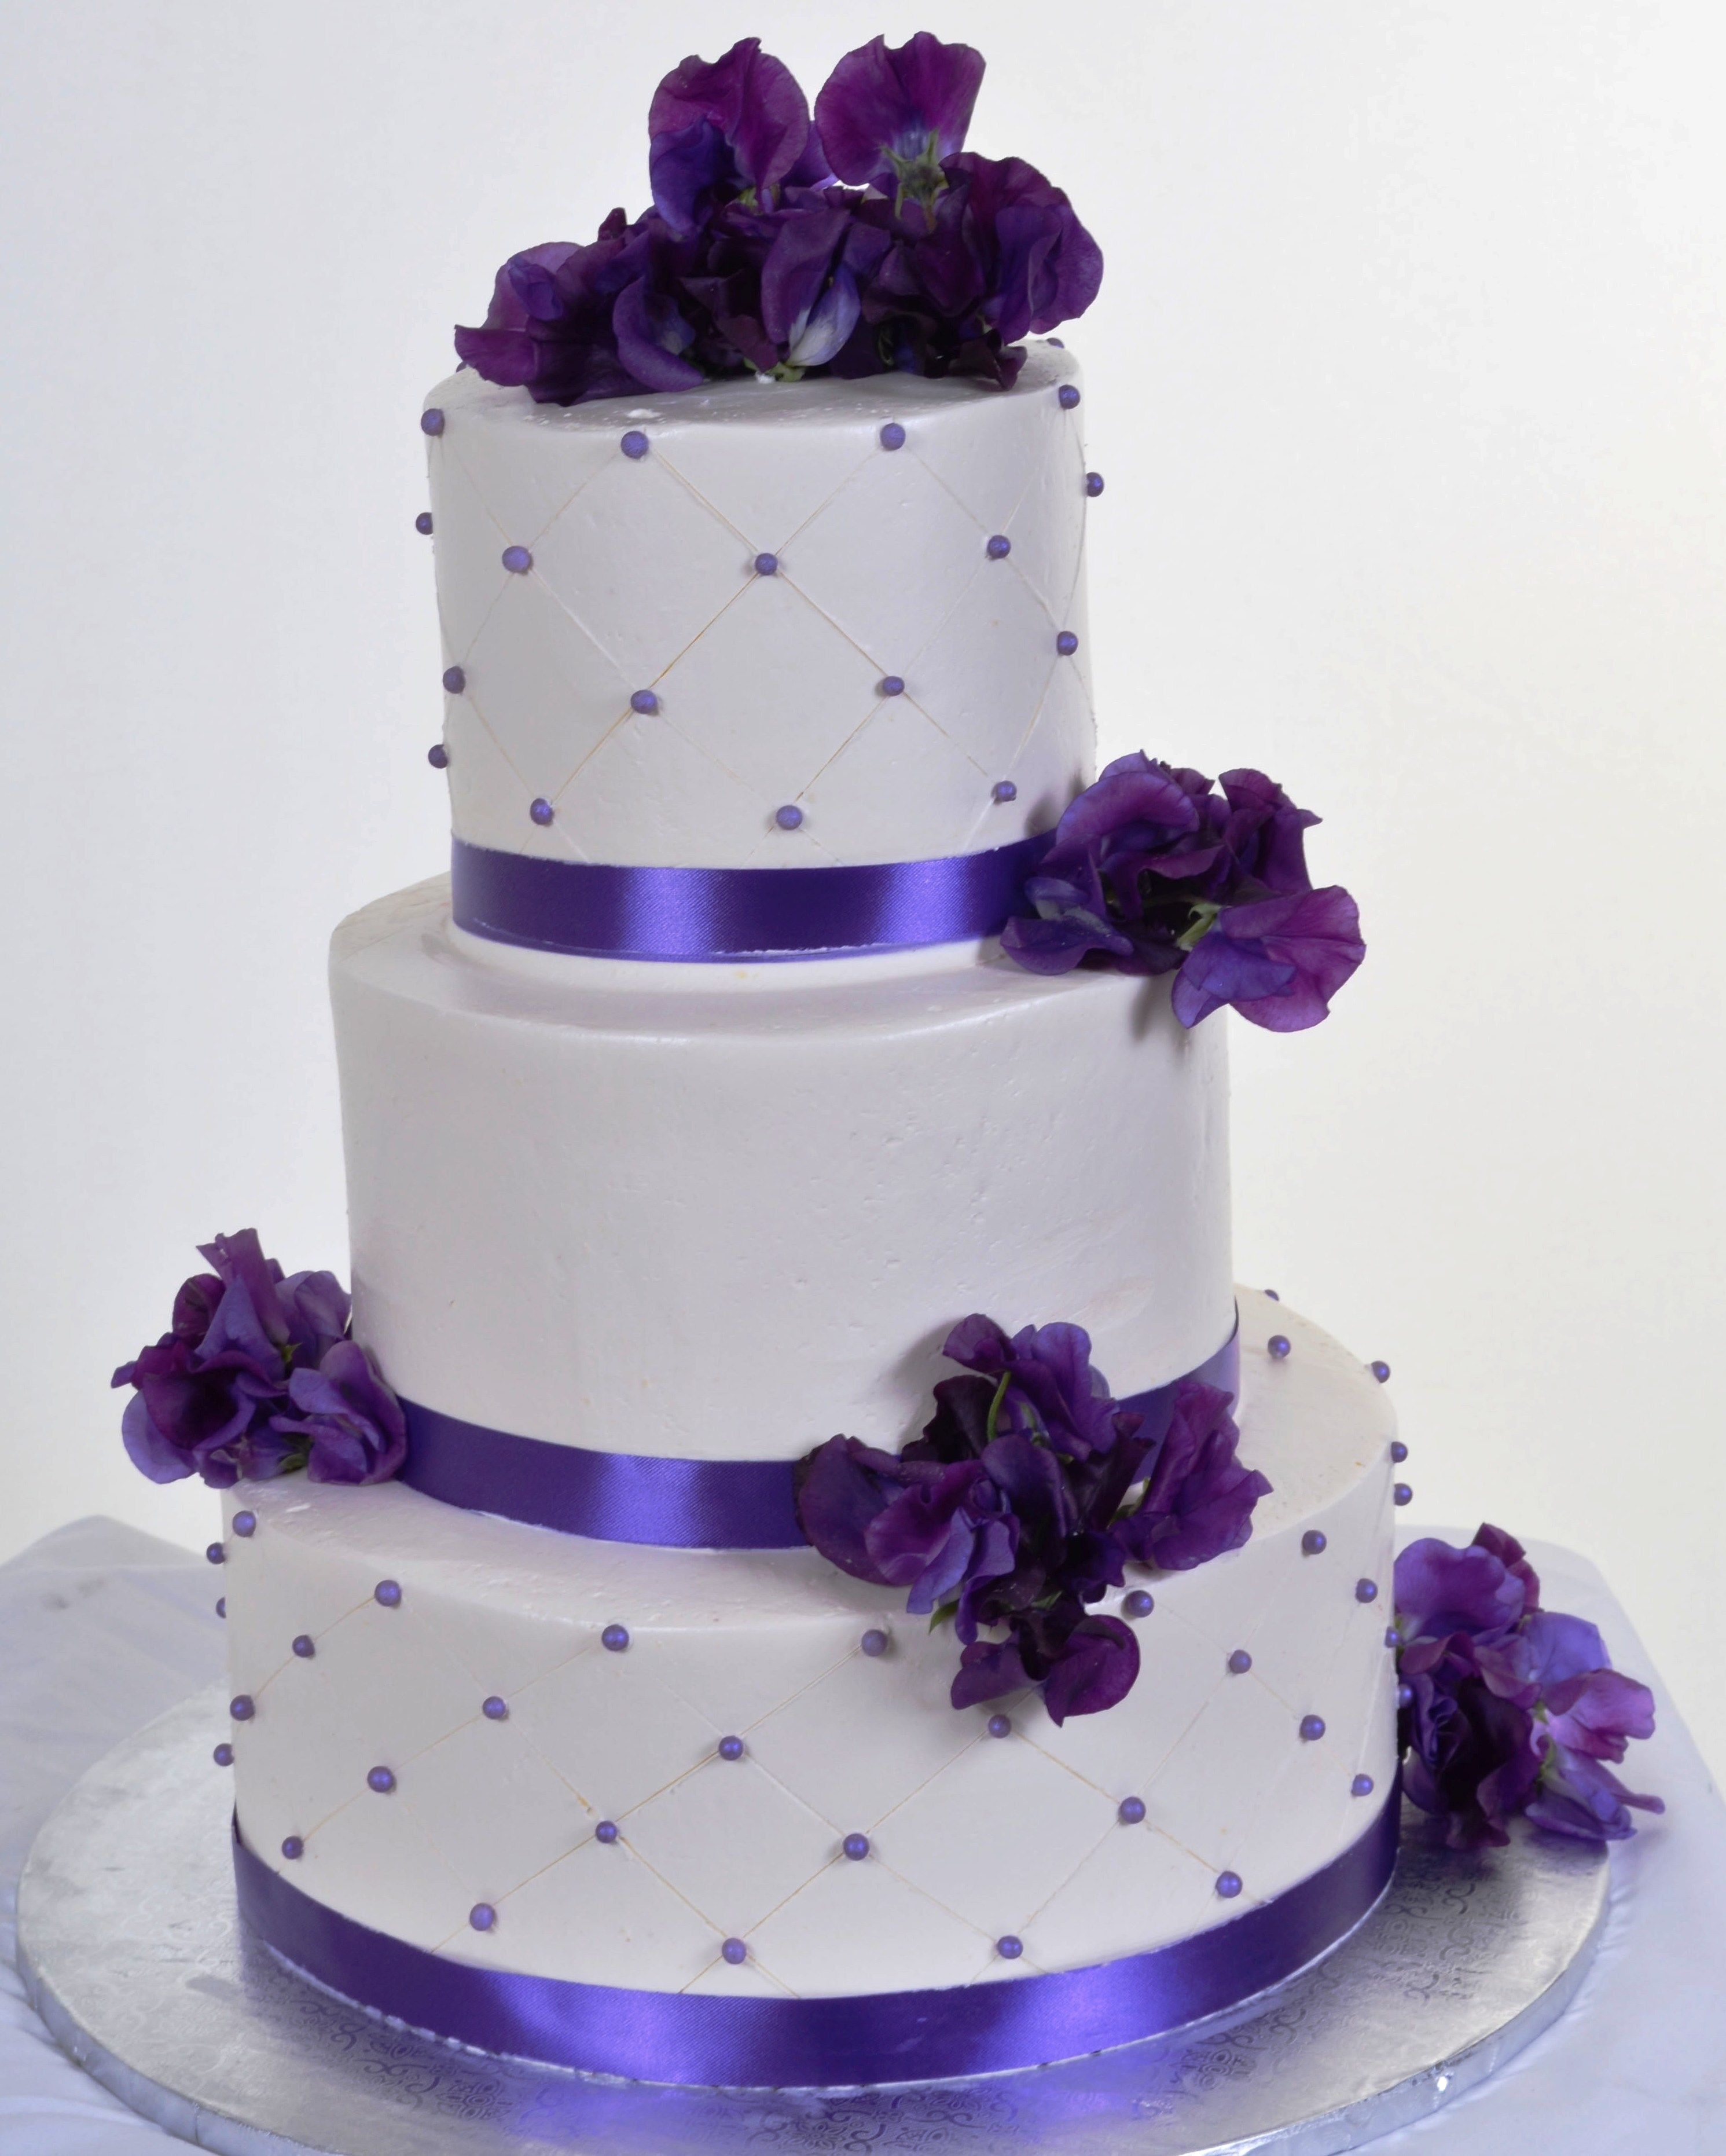 The Purple Wedding Cake Theory | Pinterest | Wedding cake purple ...